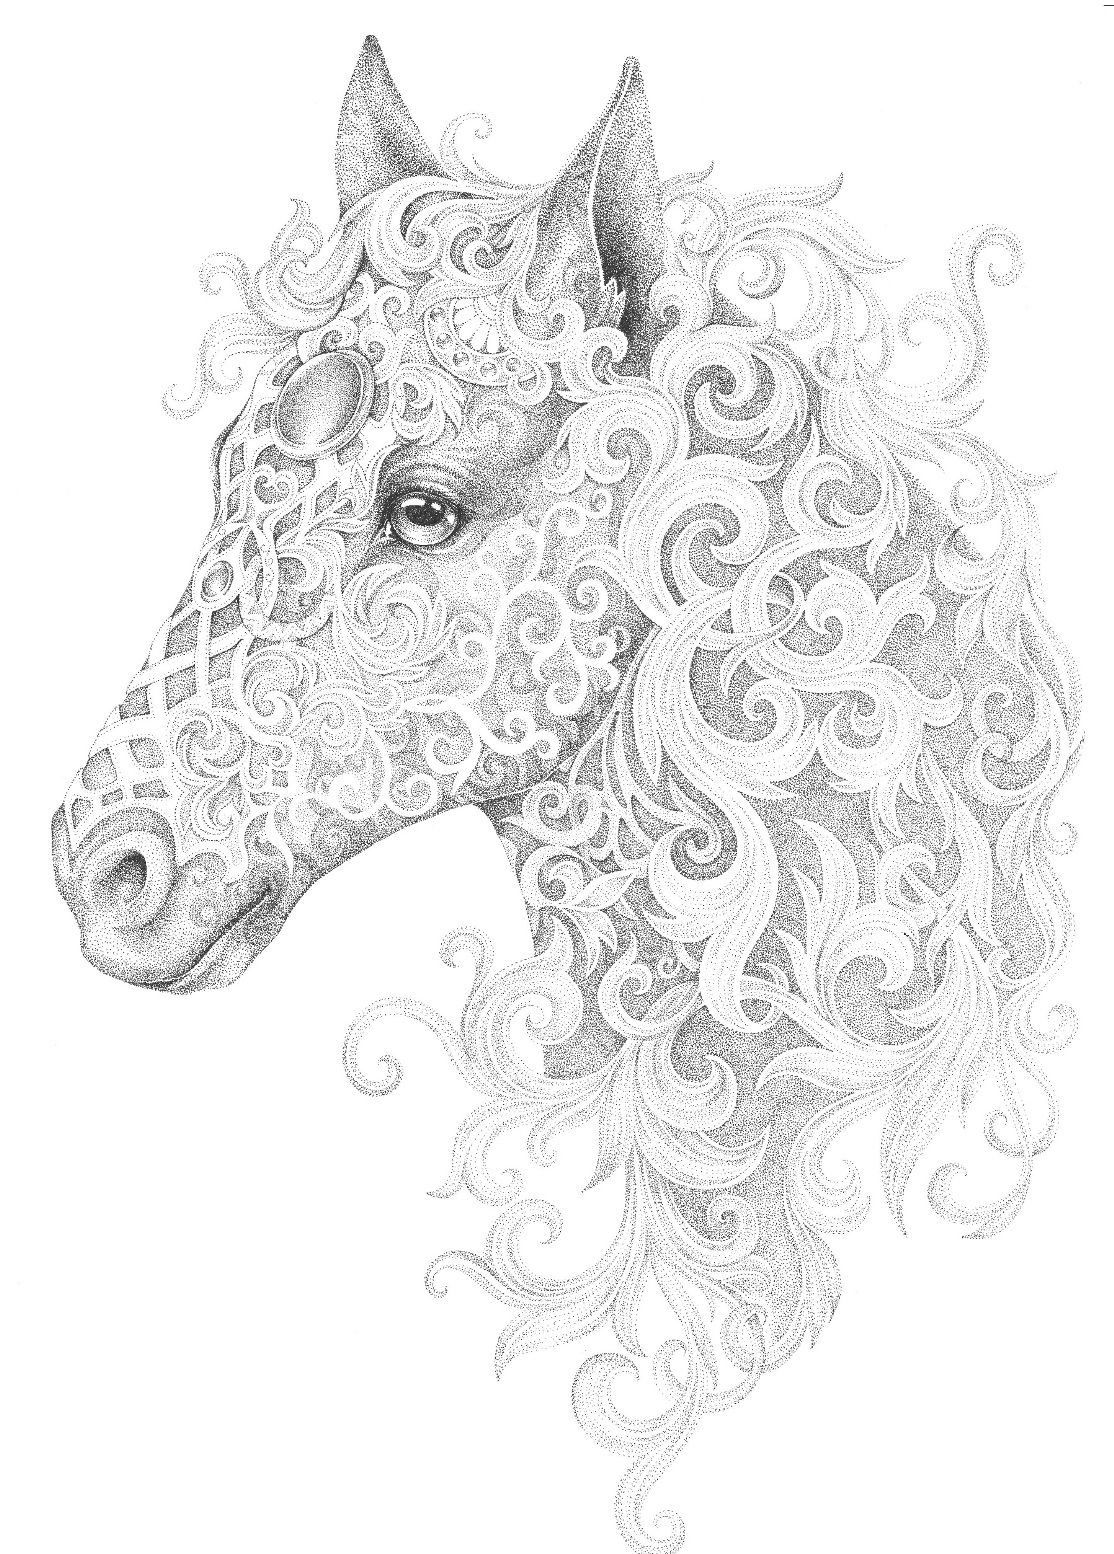 Co Colouring In Sheets Detailed - Horse adult colouring page colouring in sheets art craft art supplies i